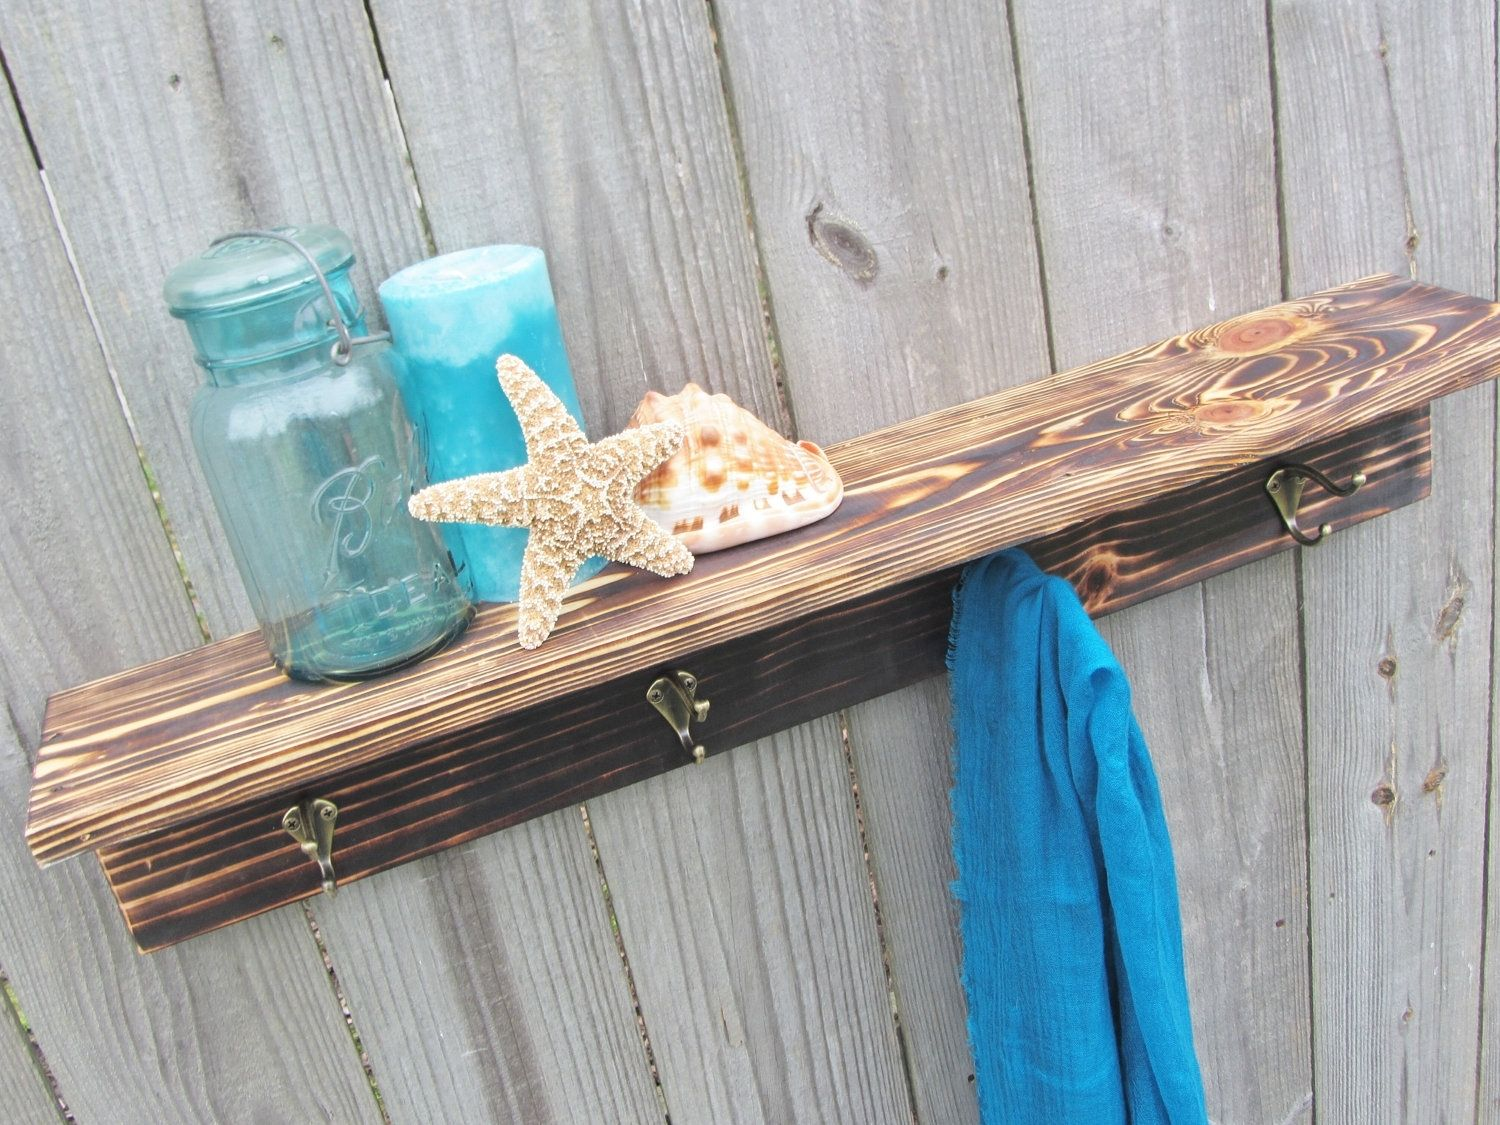 Custom rustic wood shelf with hooks made from reclaimed